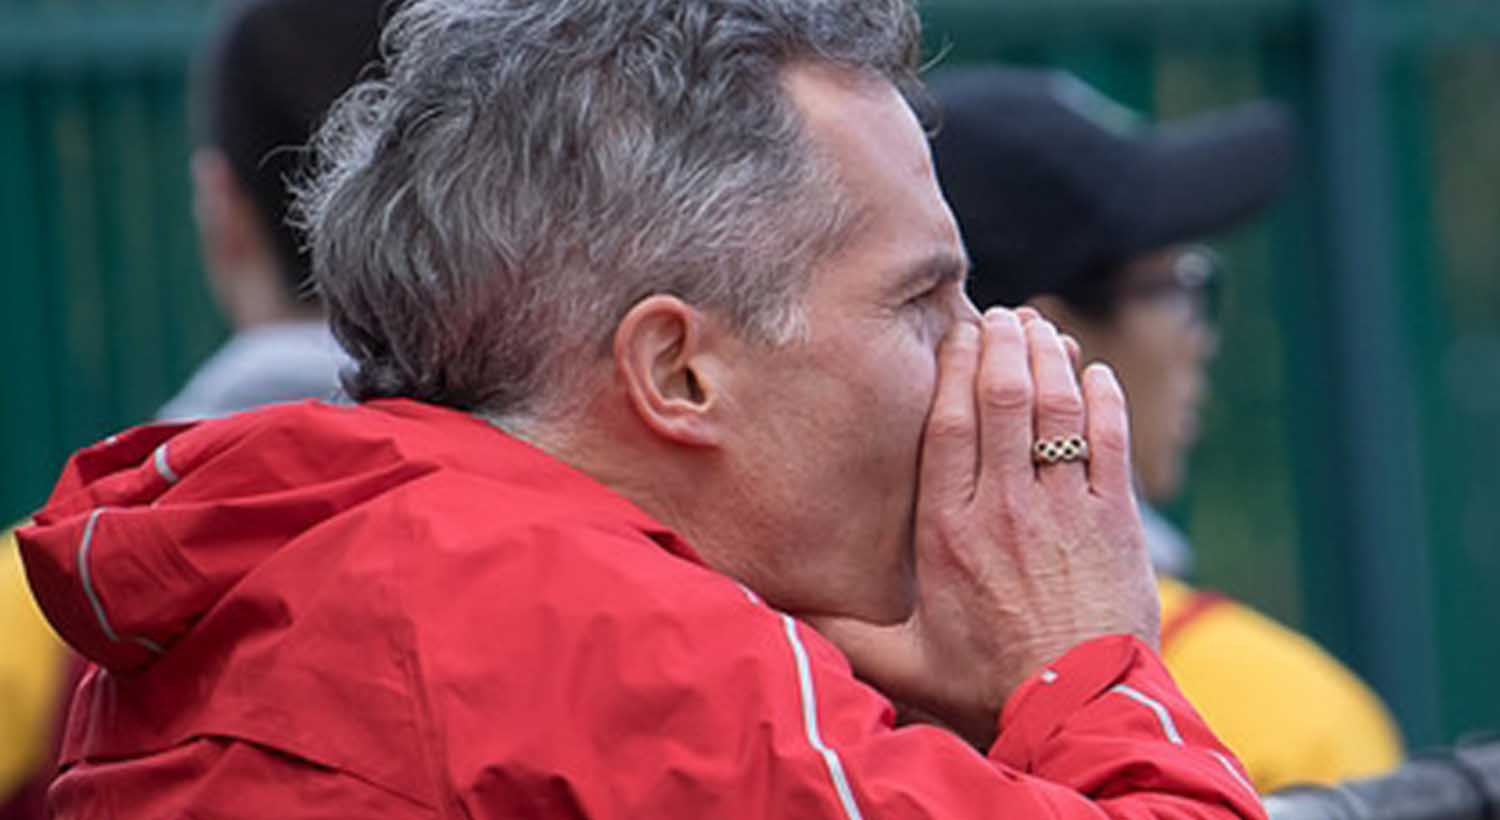 Bruce cheering and coaching